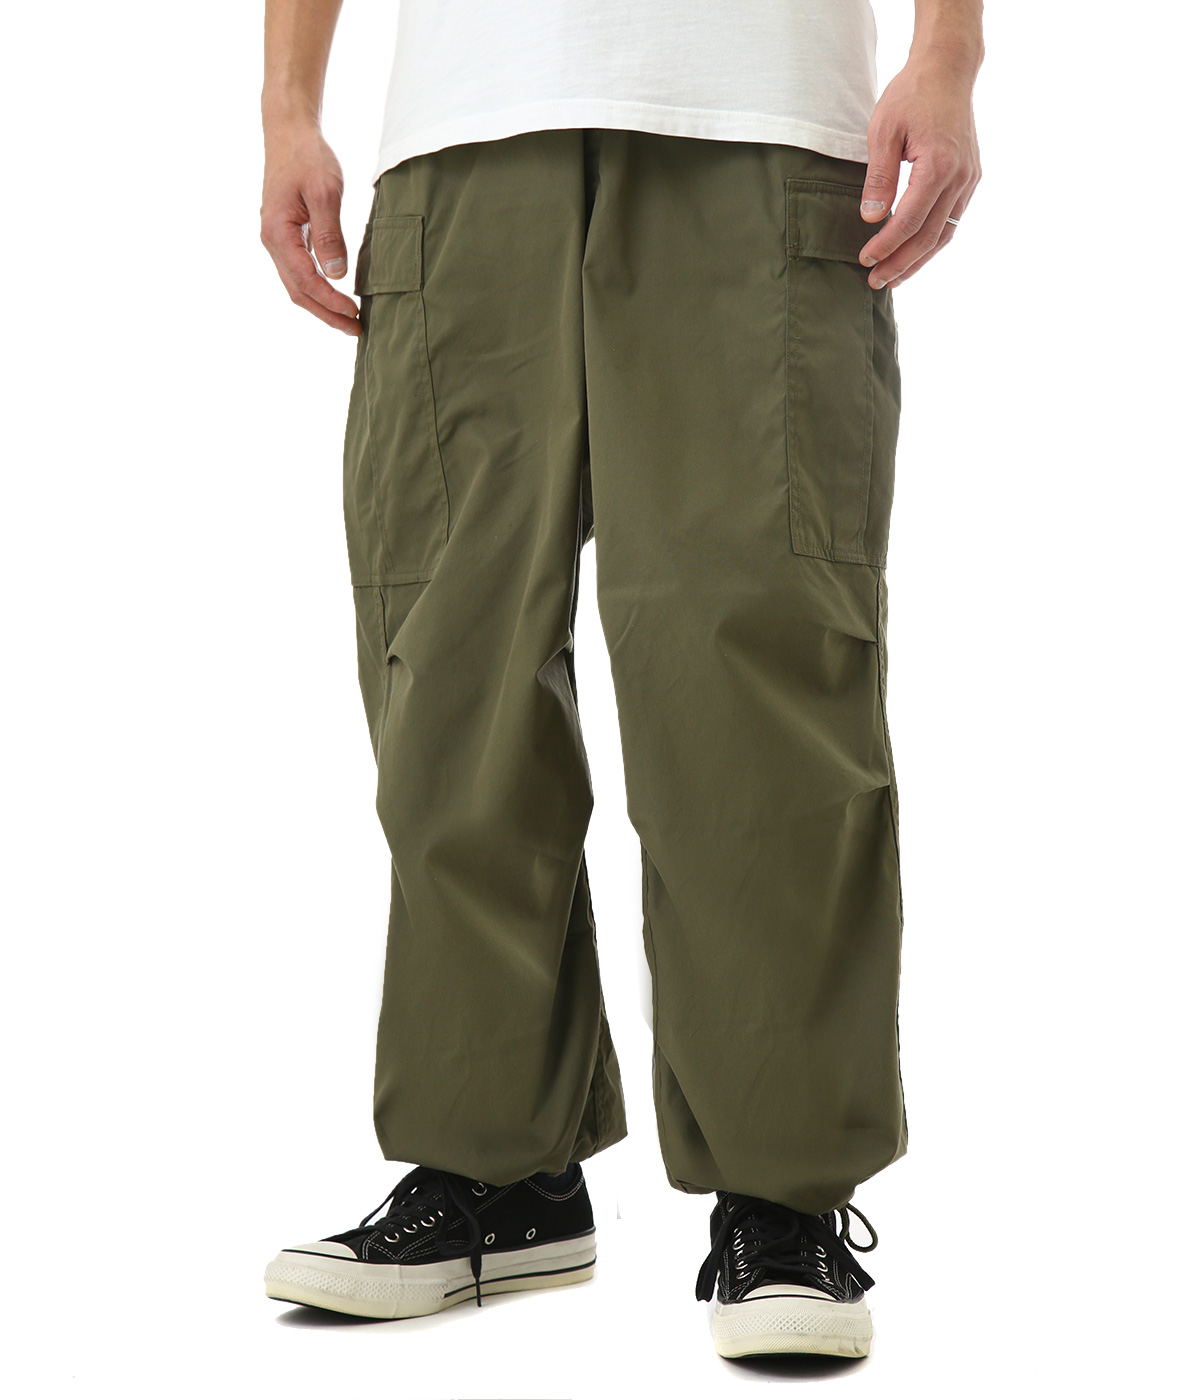 TROUSER SHELL ARCTIC / M-1951